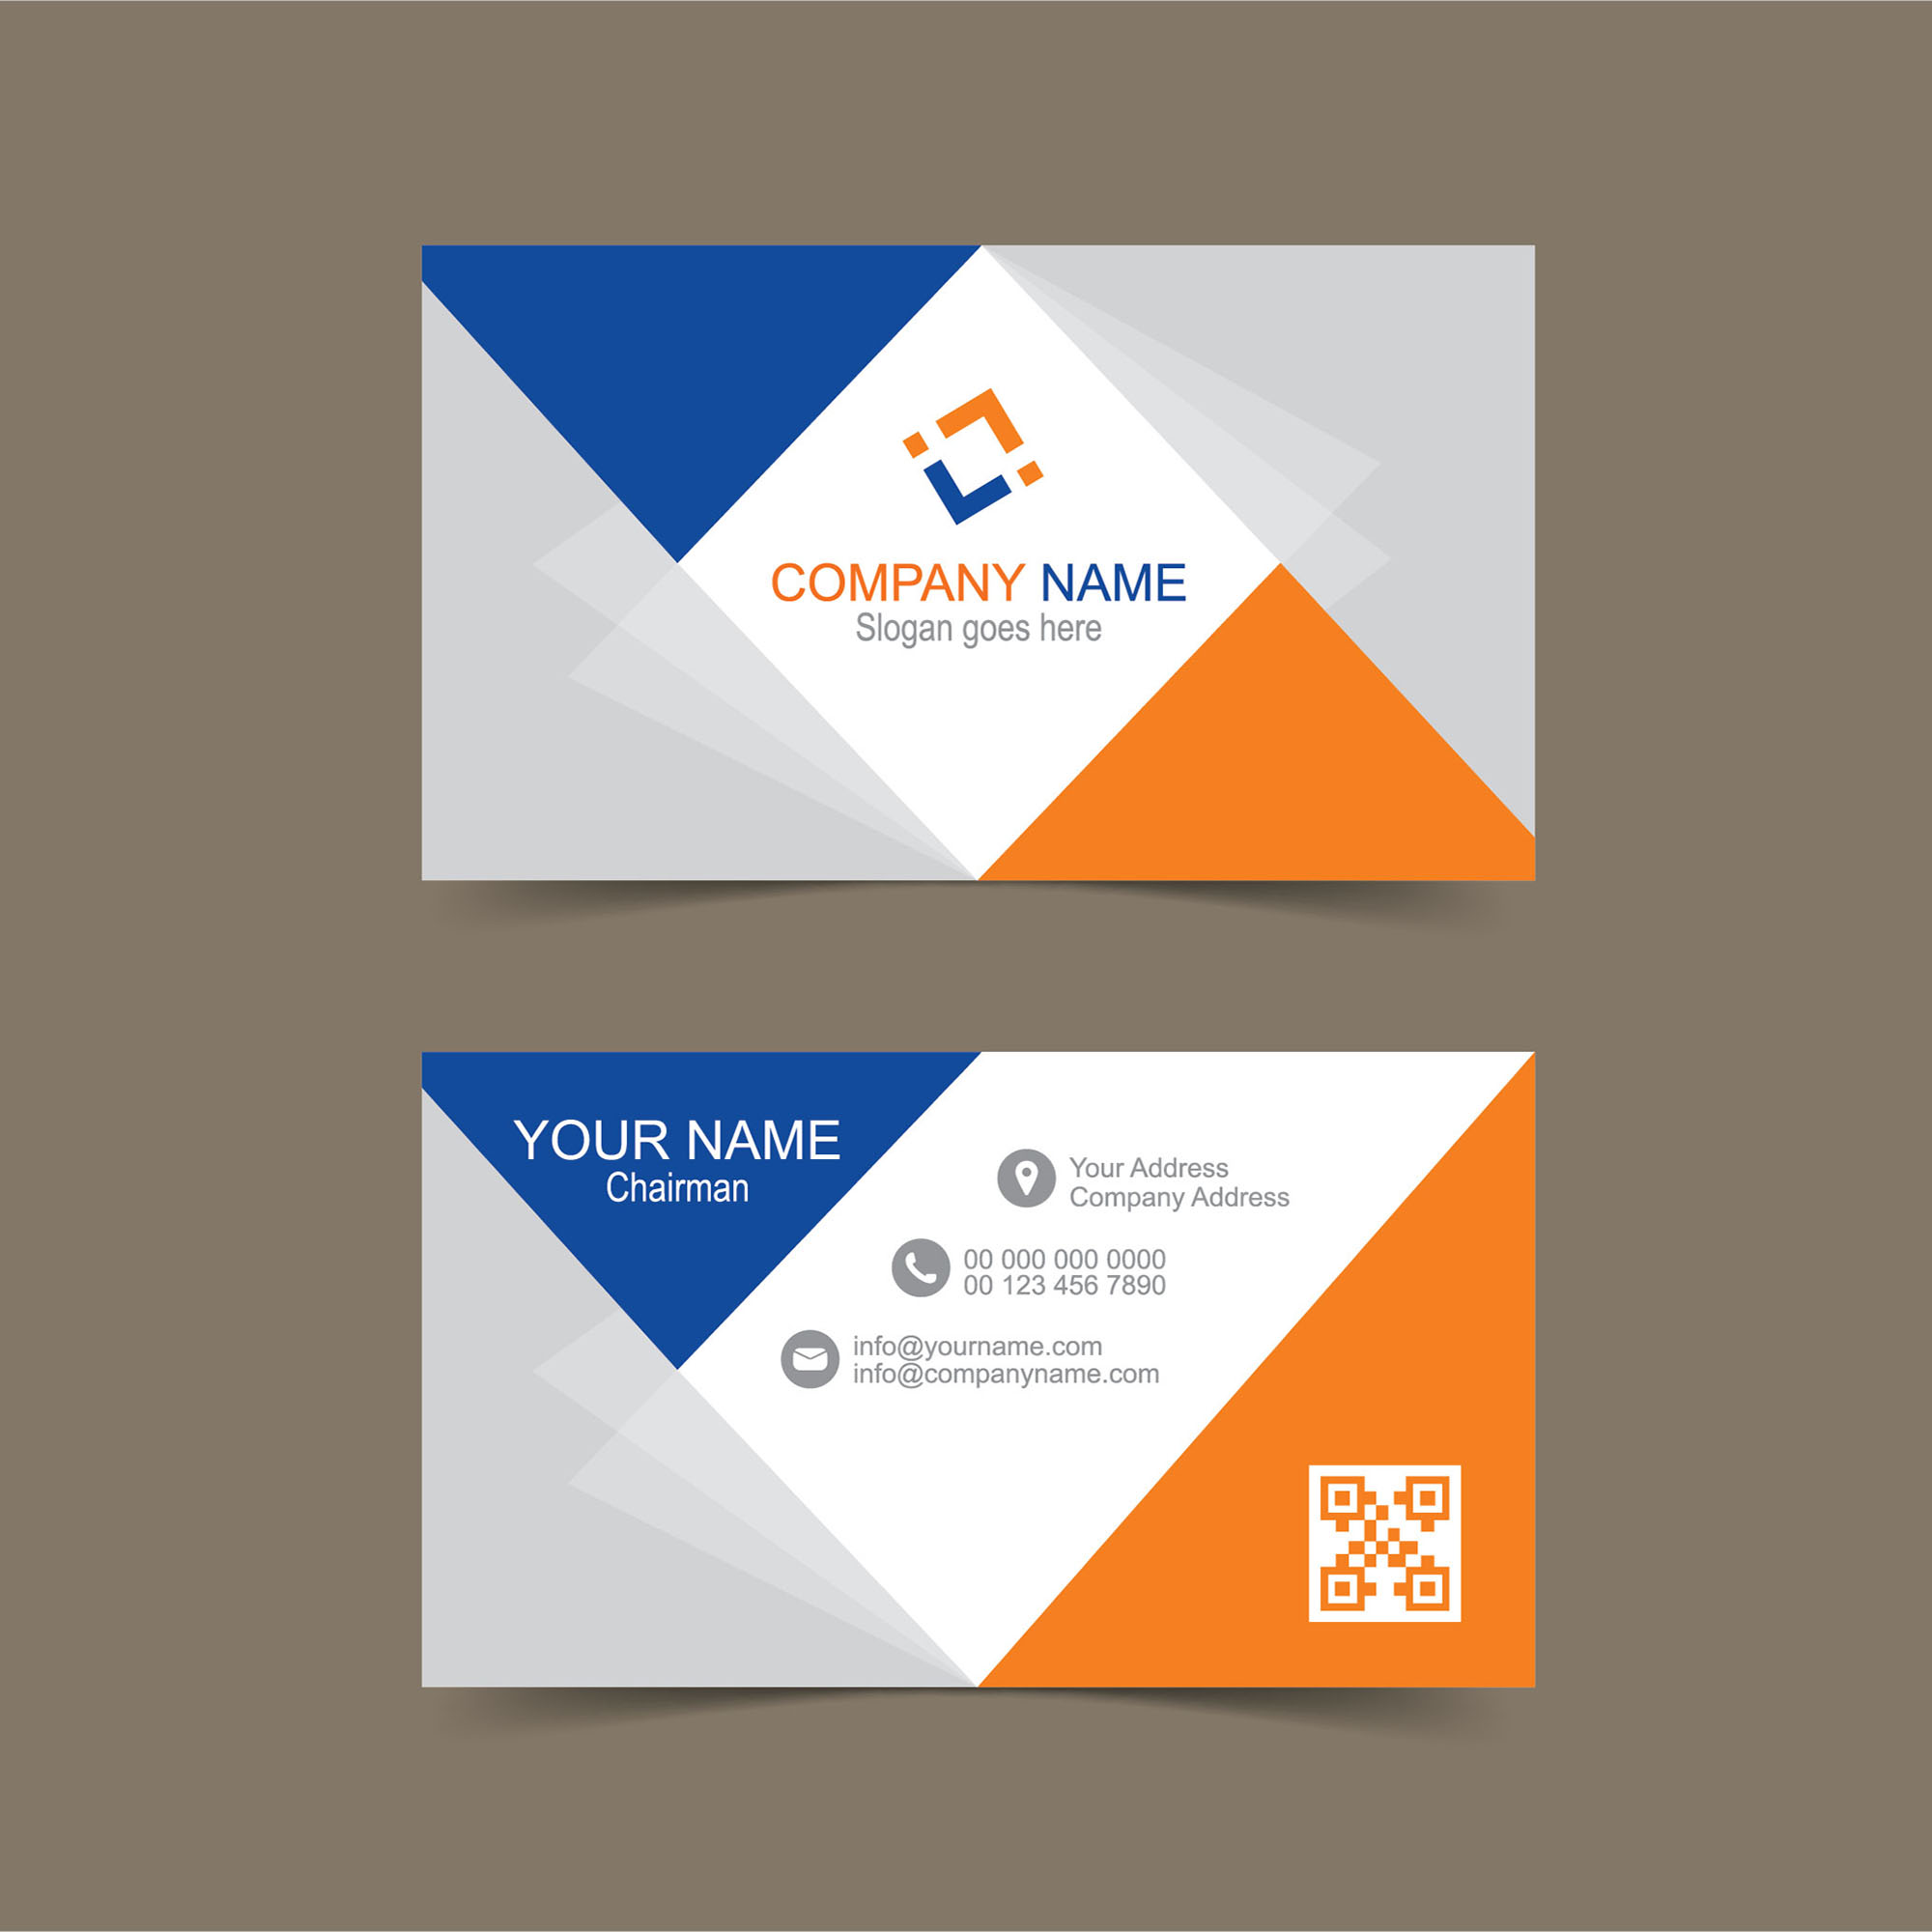 Free business card template for illustrator wisxi business card business cards business card design business card template design templates colourmoves